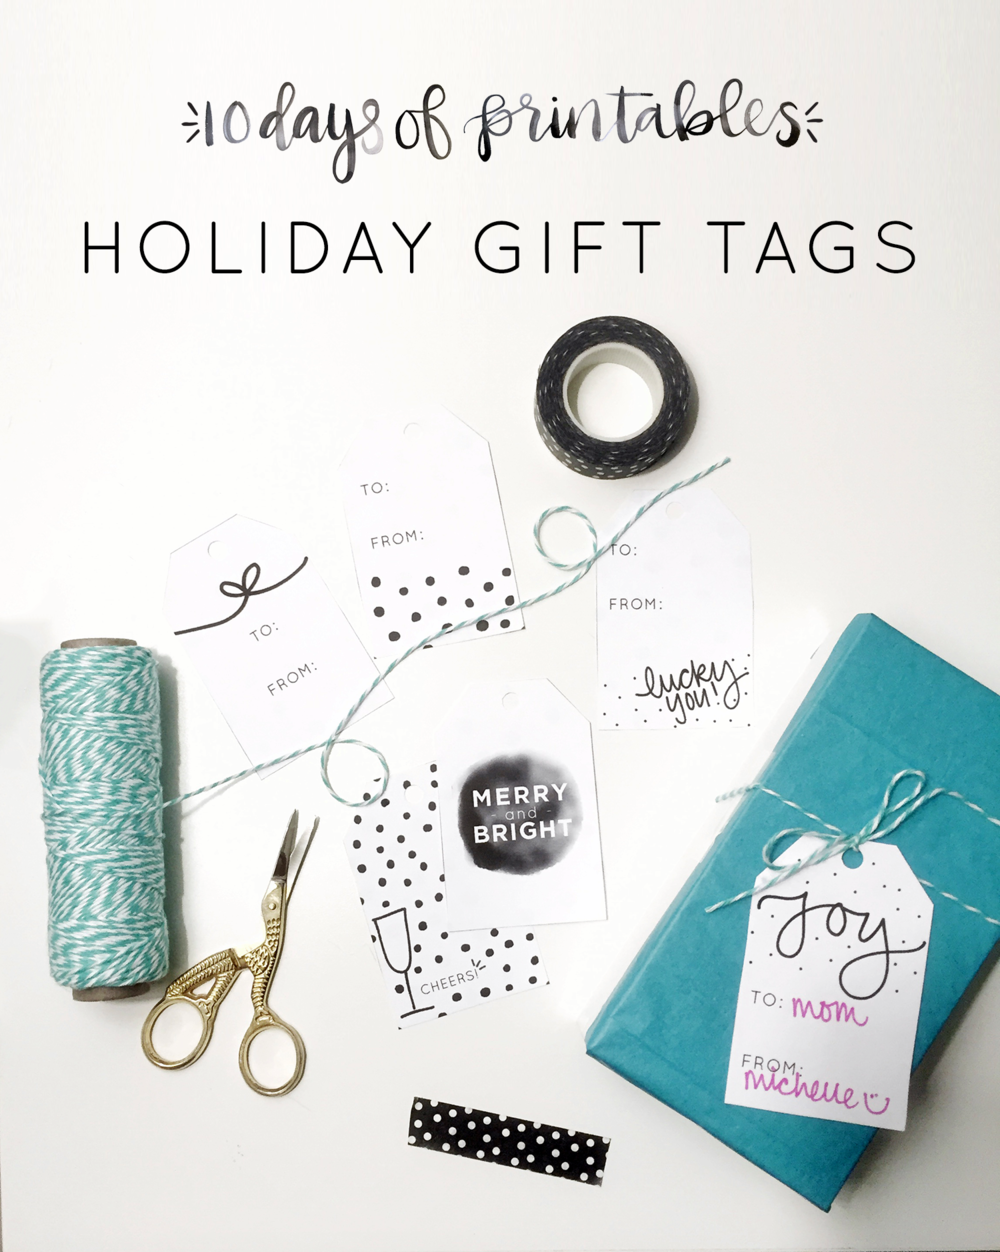 Give your holiday gifts an extra ooomph with these fun black and white graphic printables for day 2 of @heylovedesigns' 10 Days of Printables!